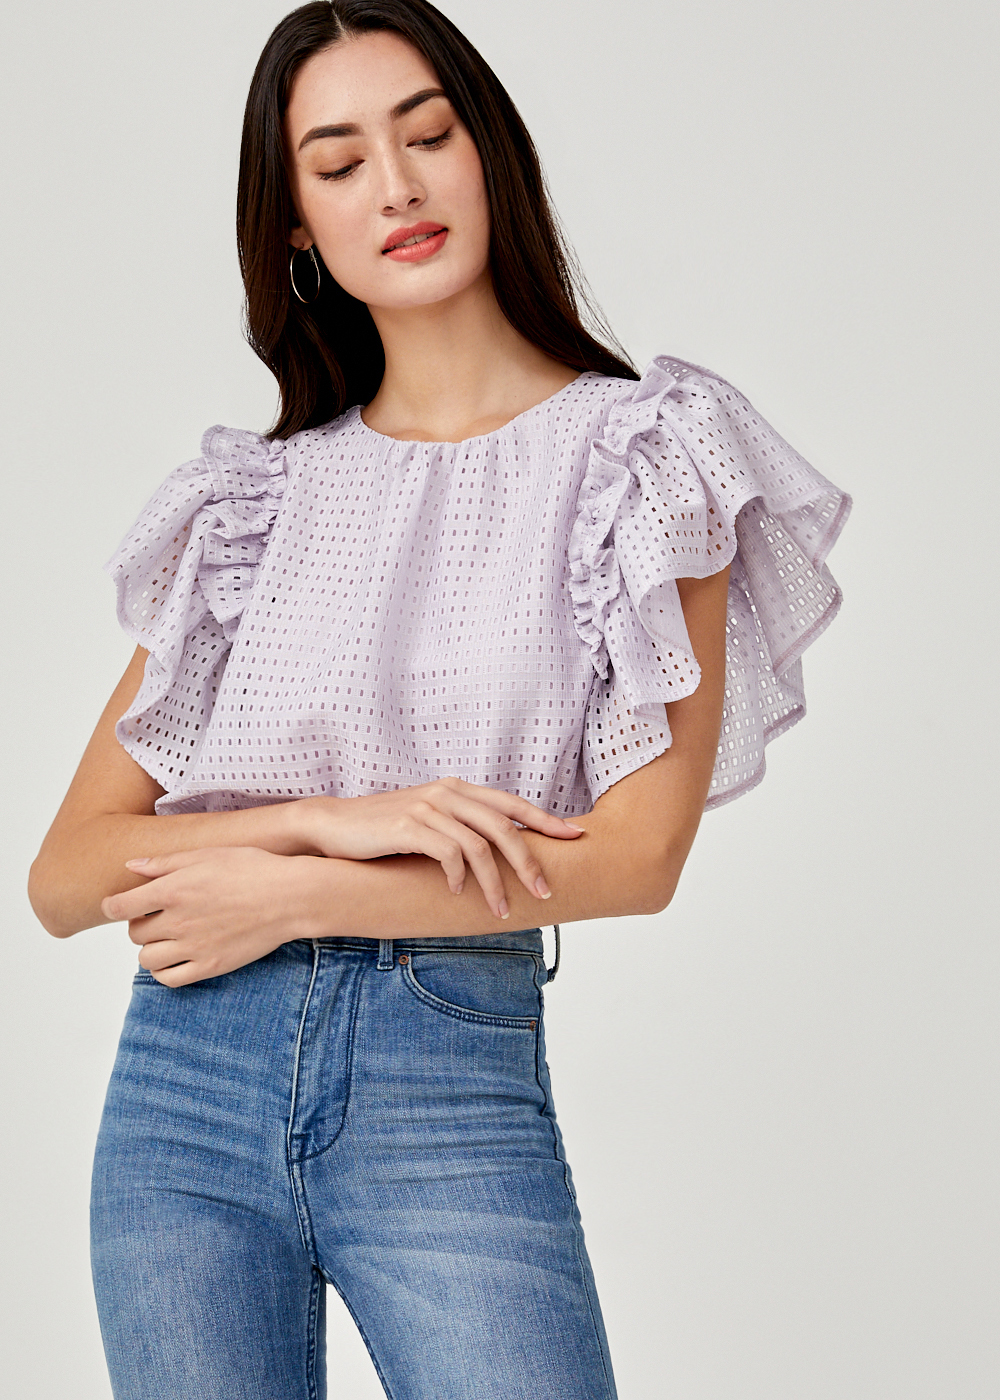 Amabel Ruffle Sleeve Top